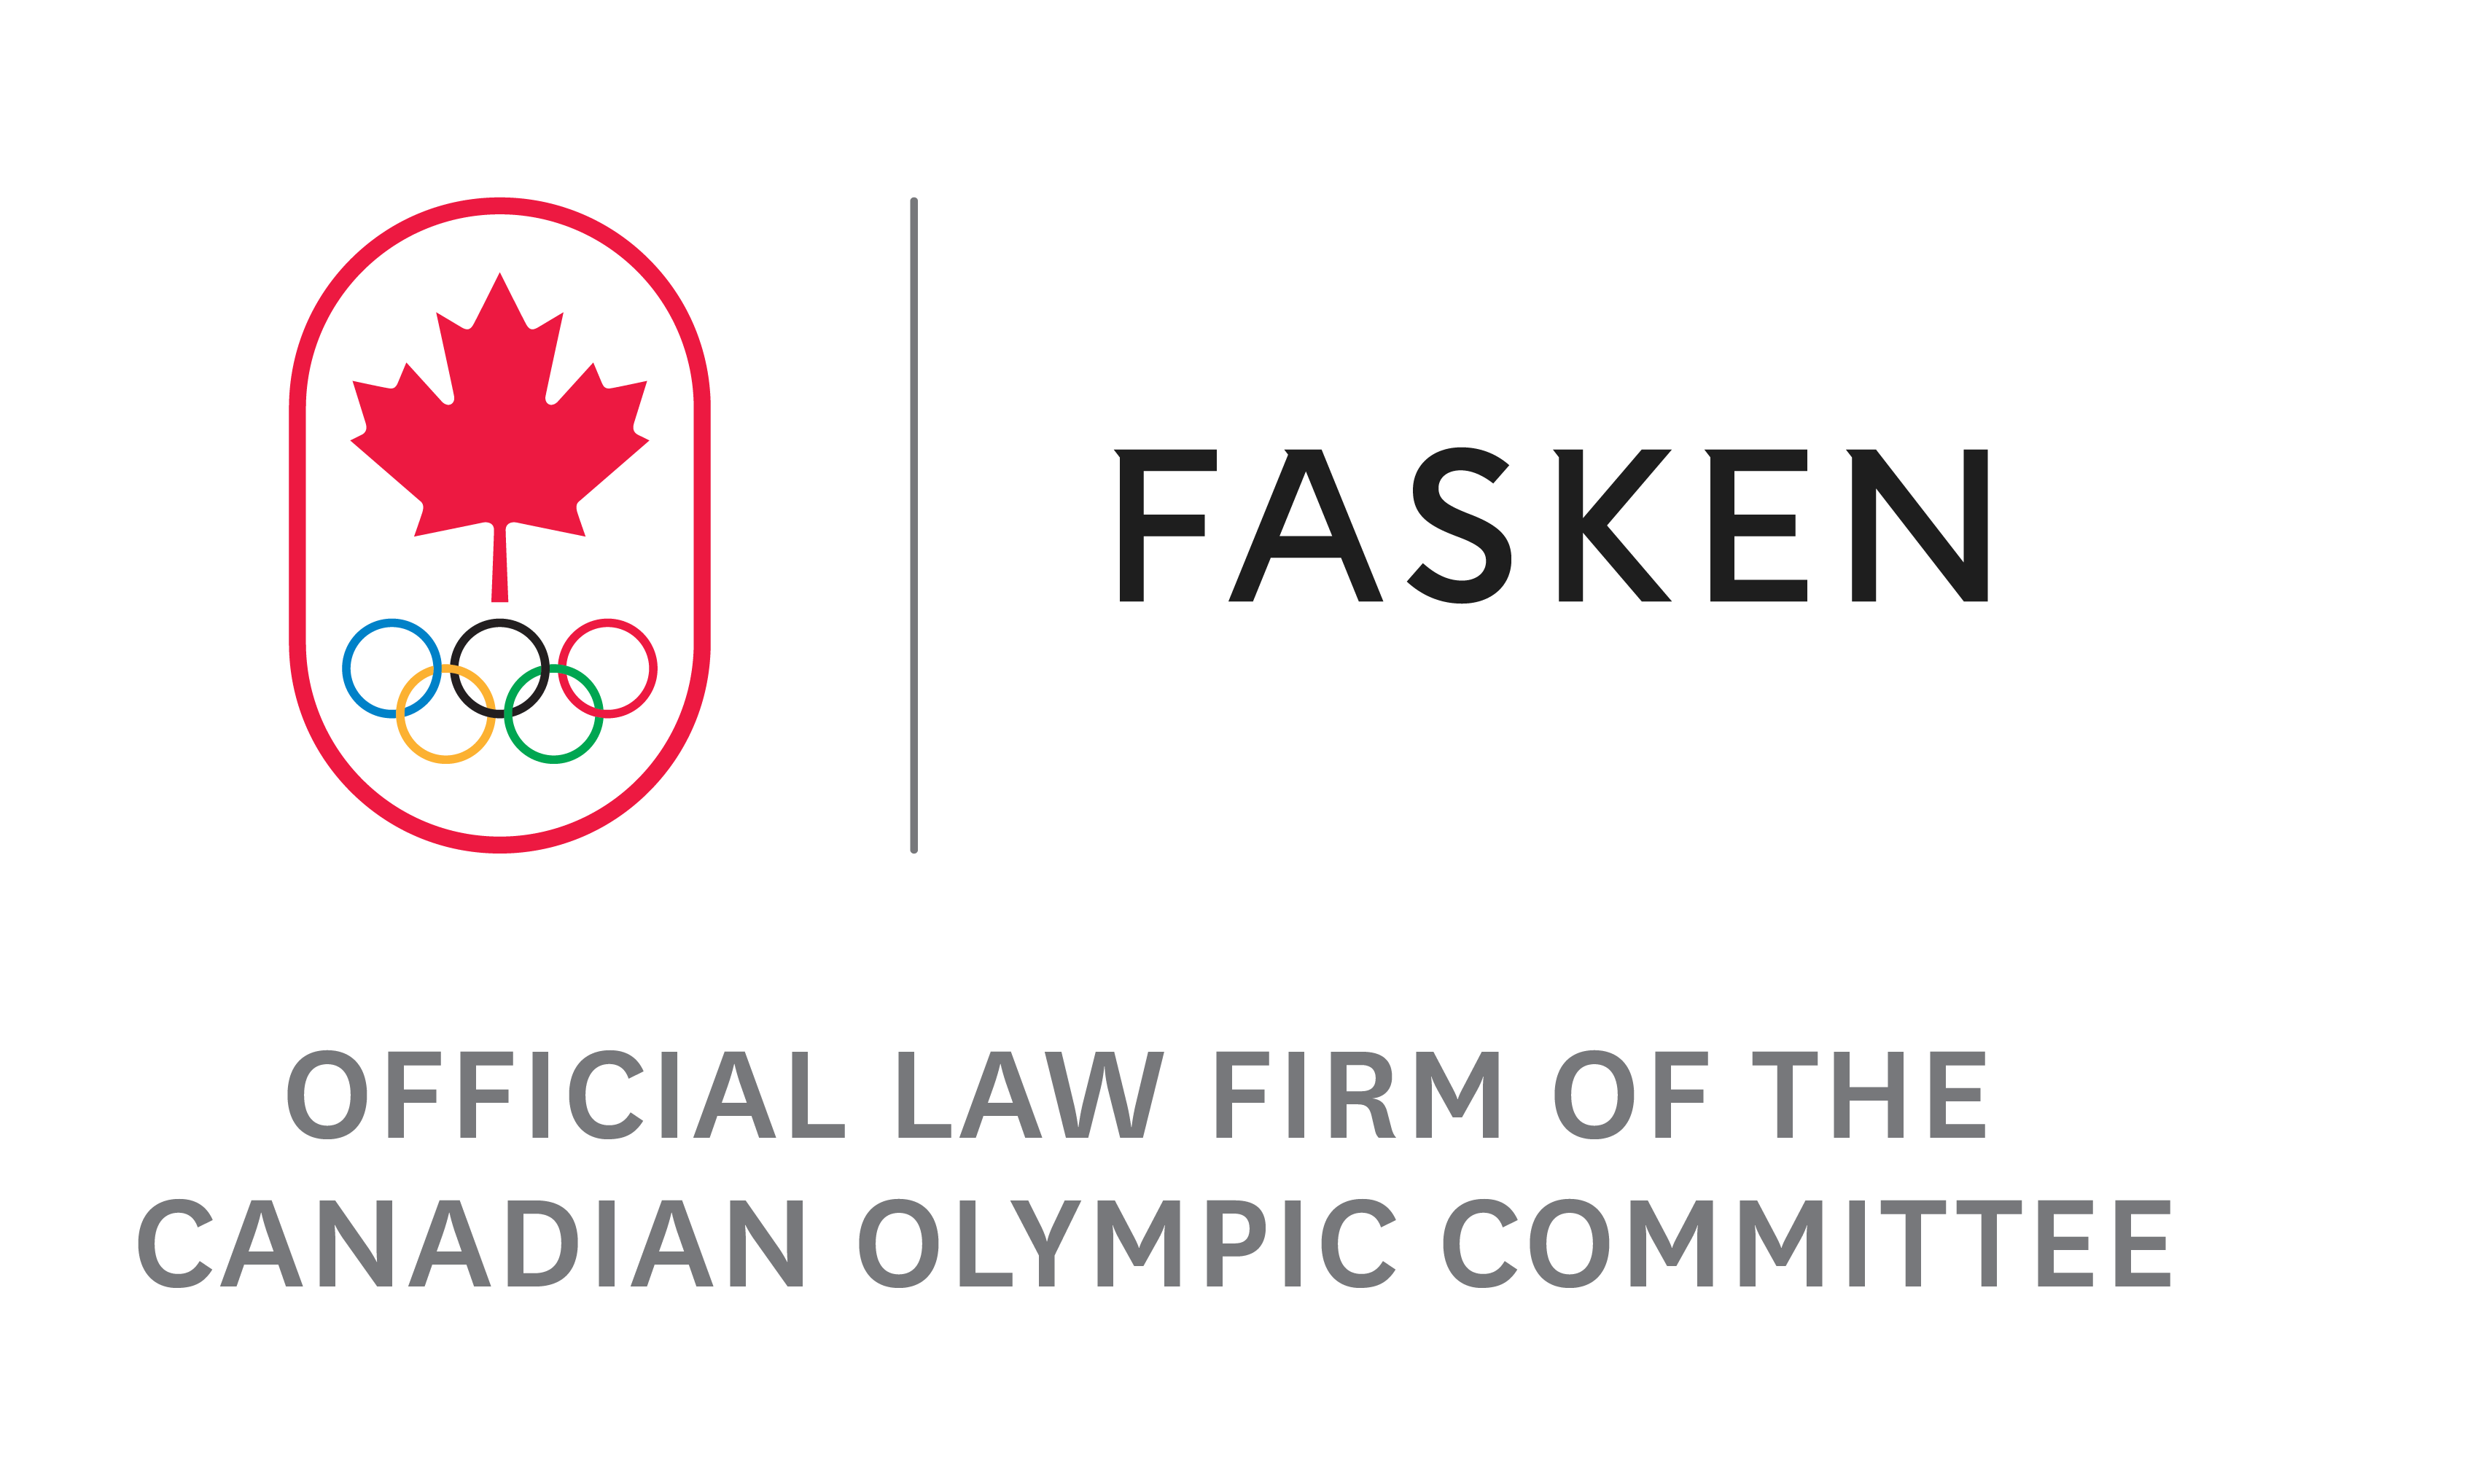 Leading Canadian Law Firm Fasken Launches Pioneering Hydrogen Energy Advisory Team to Help Clients Navigate Emerging H2 Economy